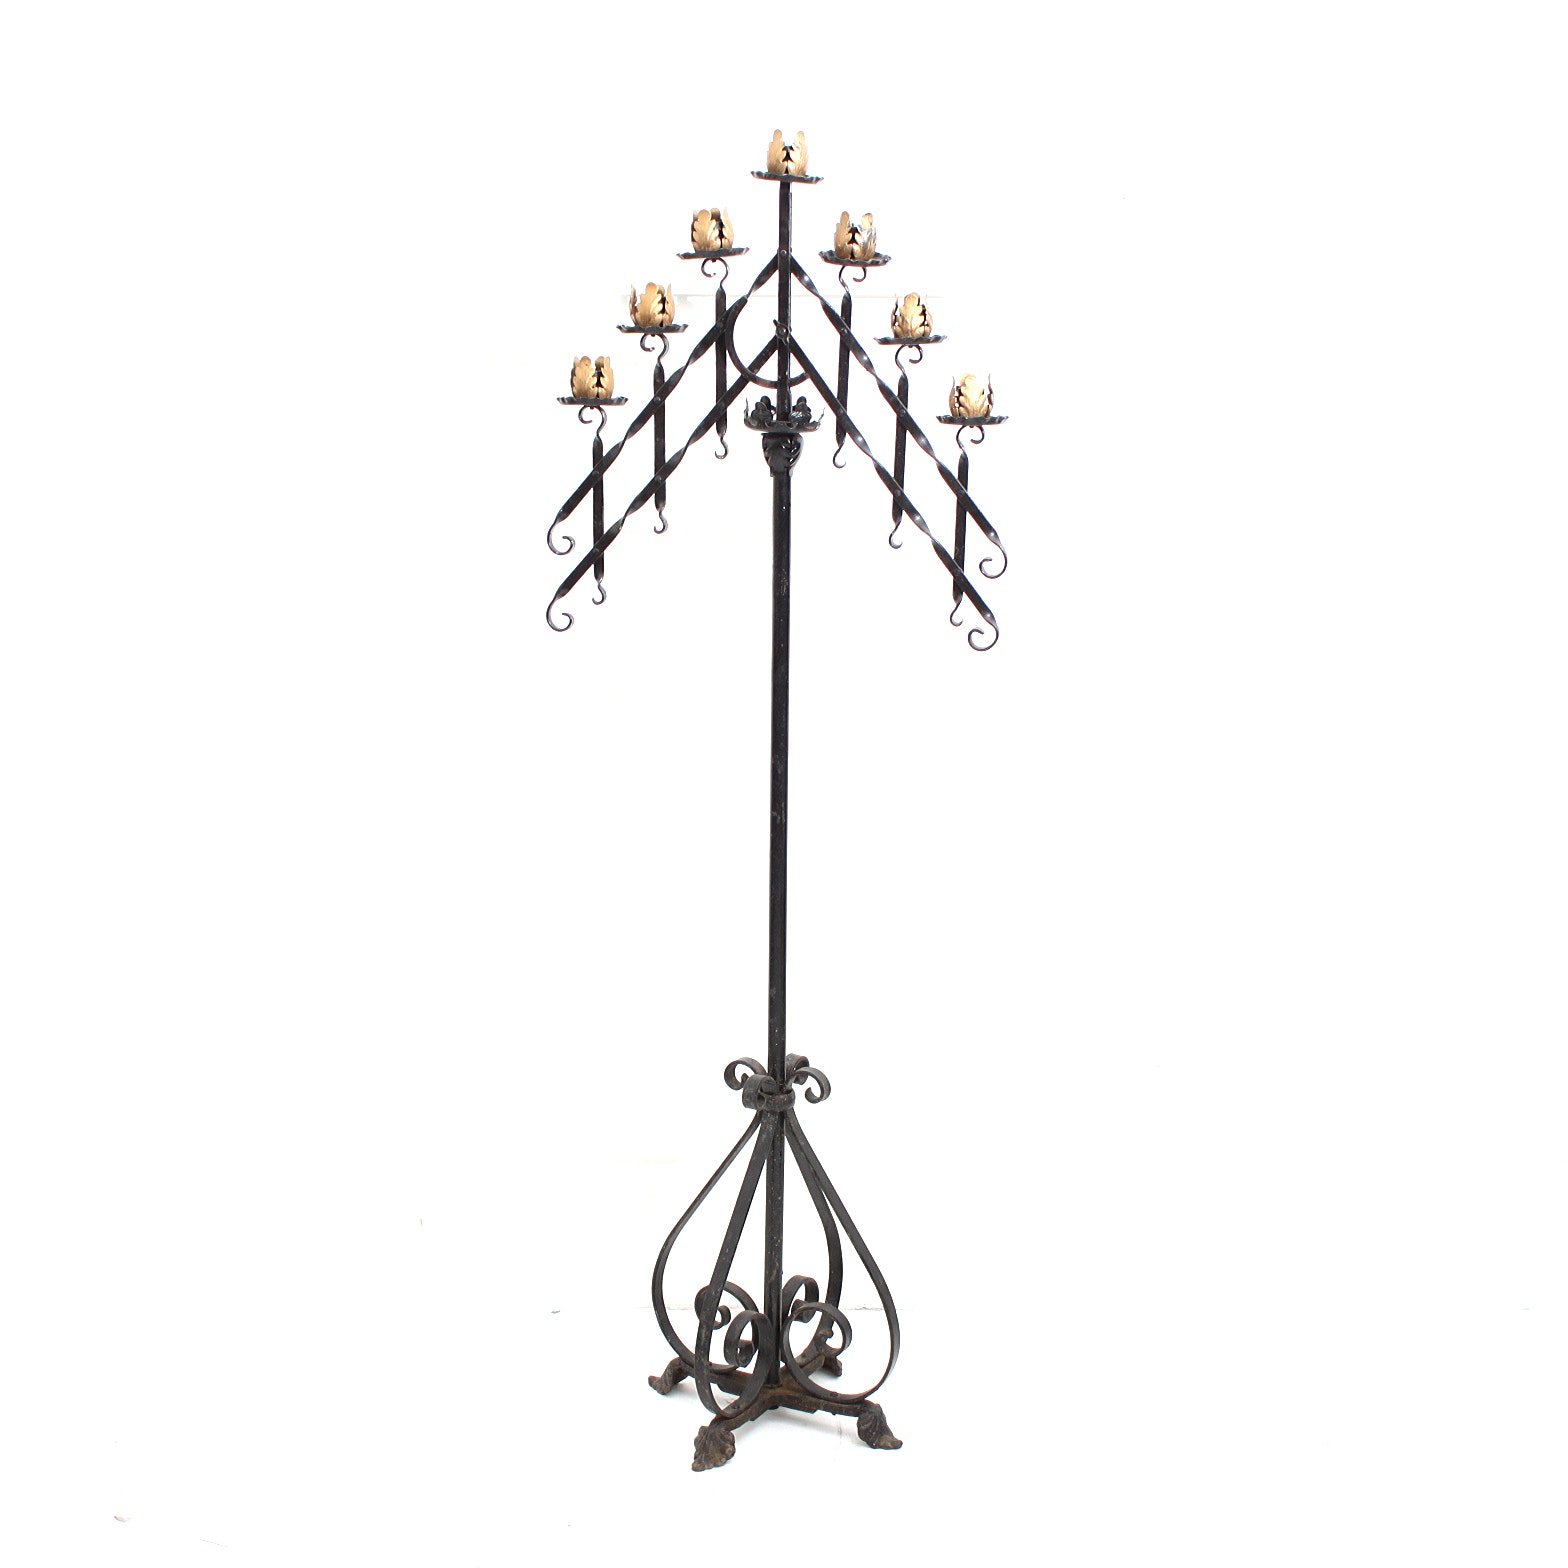 Vintage Wrought Iron Gothic Style Altar Candle Holder